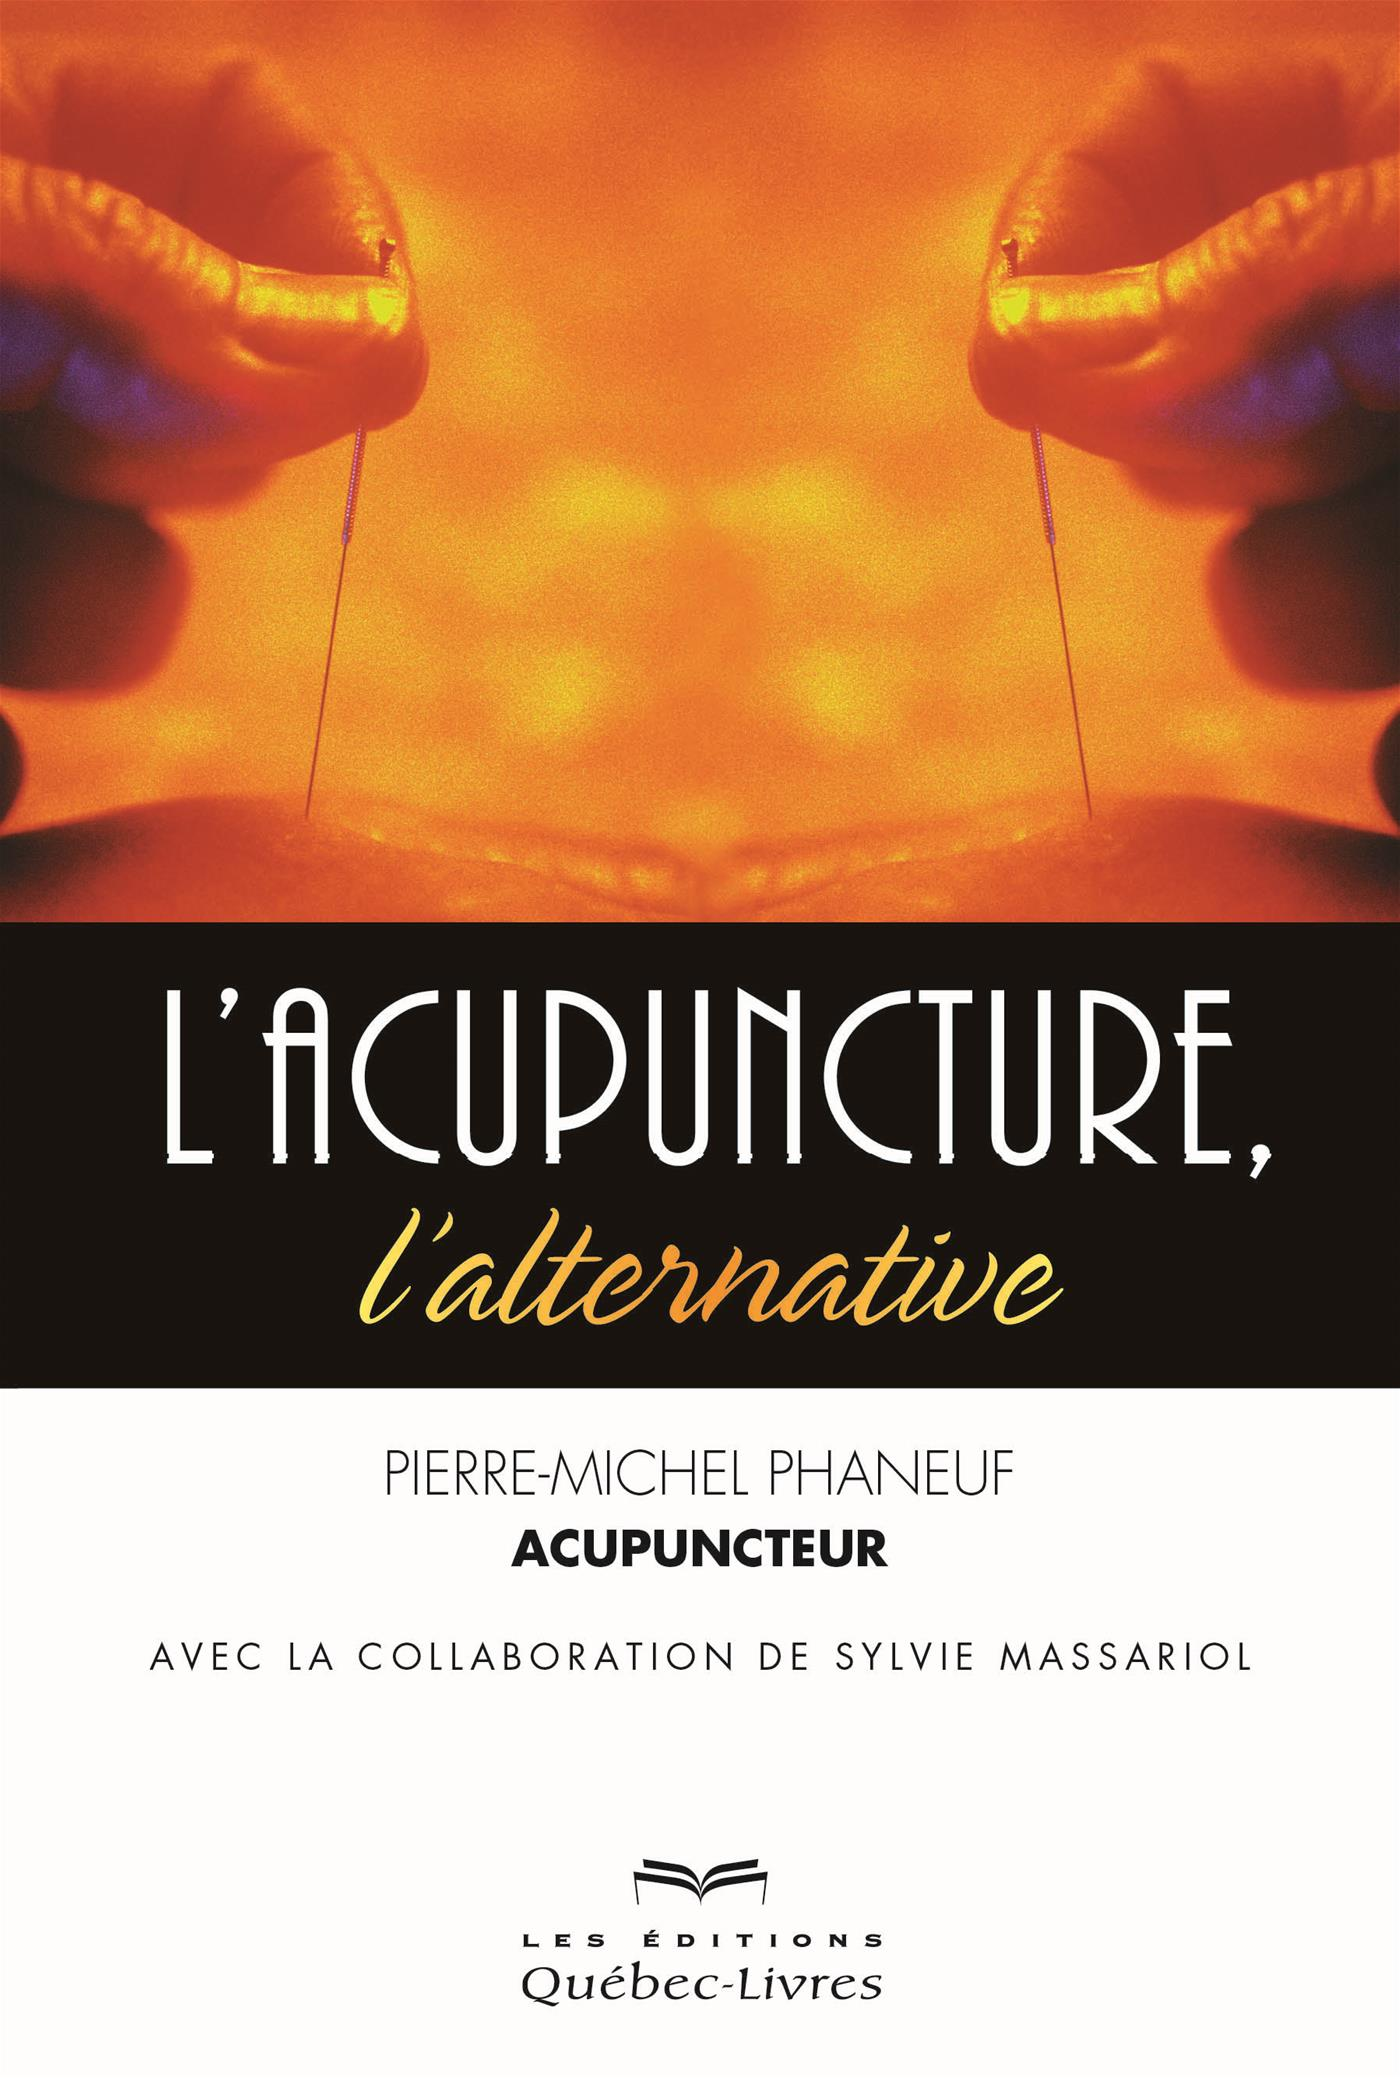 Vignette du livre L'acupuncture, l'alternative